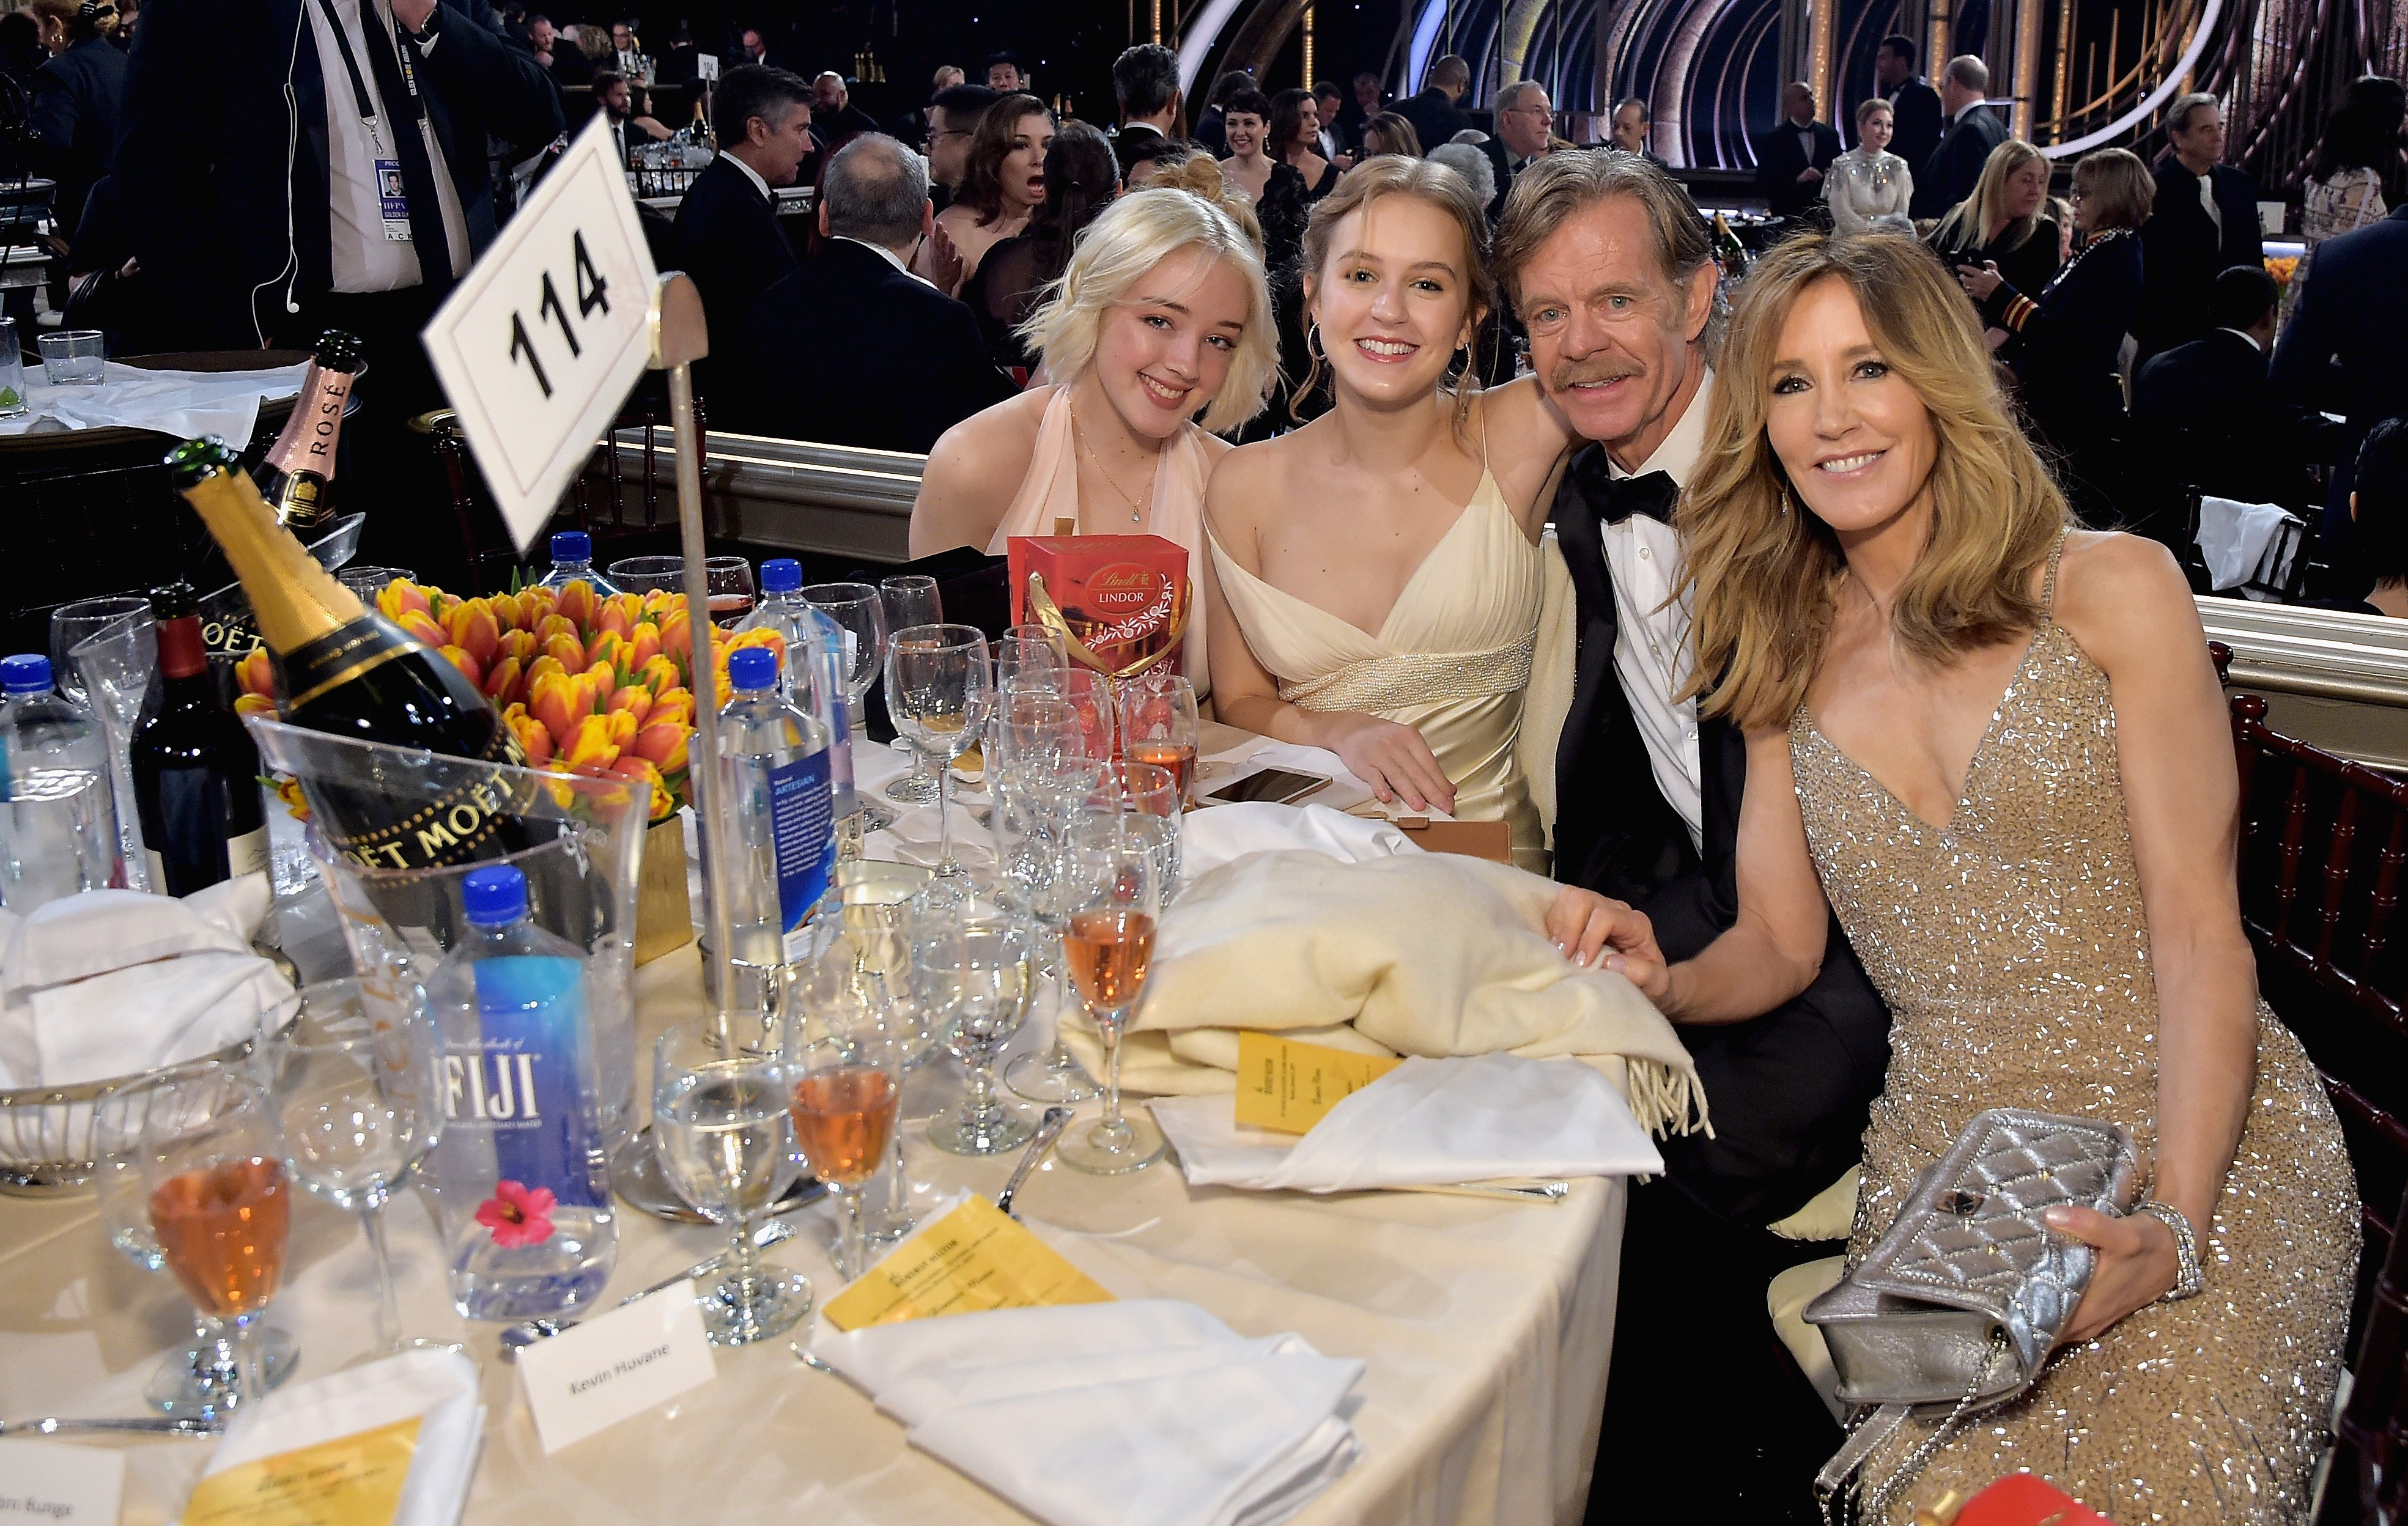 Sophia Macy, Georgia  Macy, William H. Macy, and Felicity Huffman on January 6, 2019 at the Beverly Hilton in Los Angeles, California | Photo: Getty Images/Global Images Ukraine